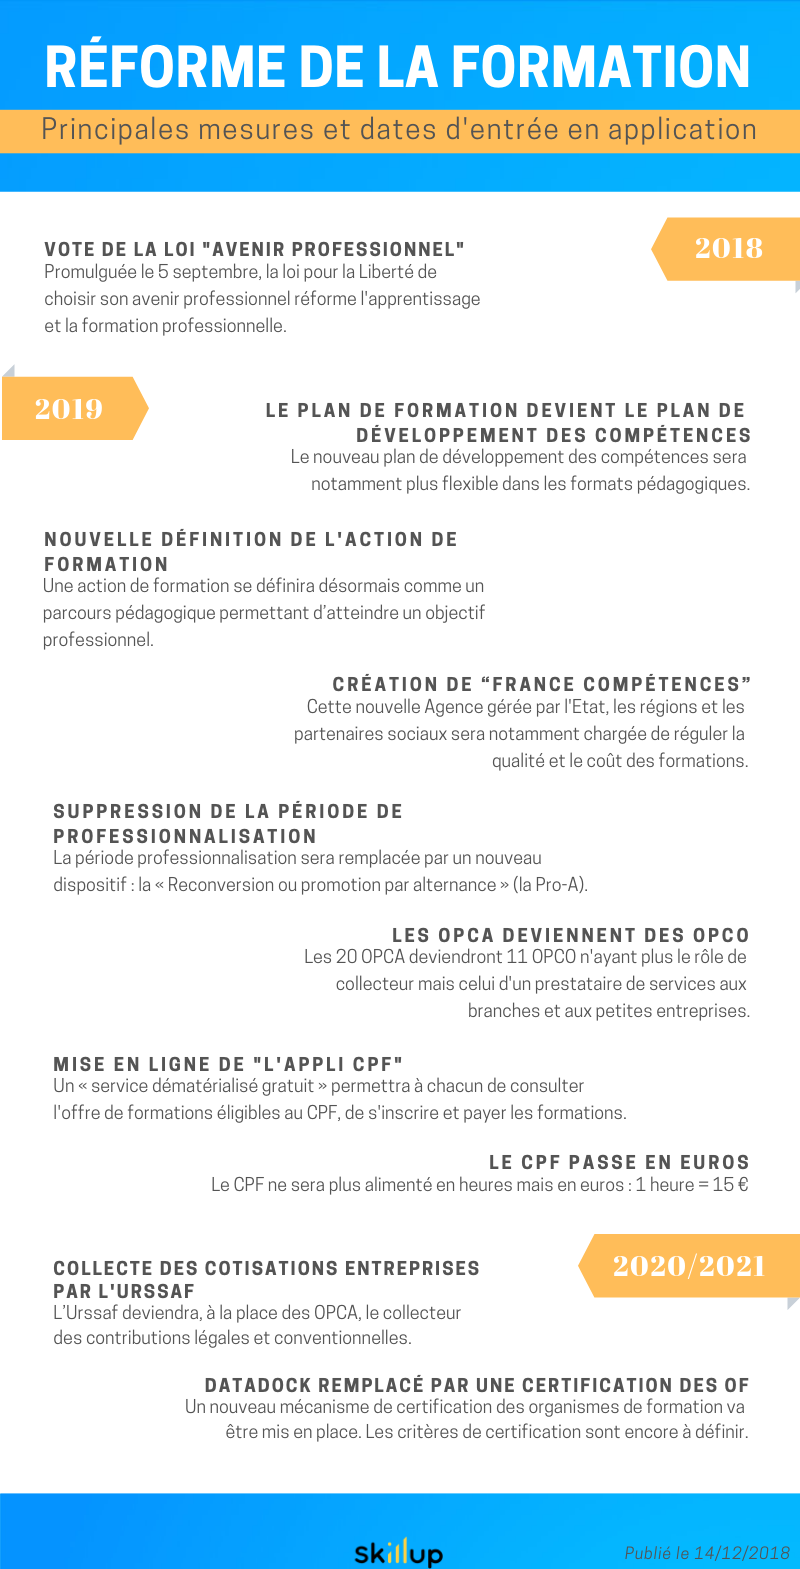 Infographie-reforme-by-skillup-1